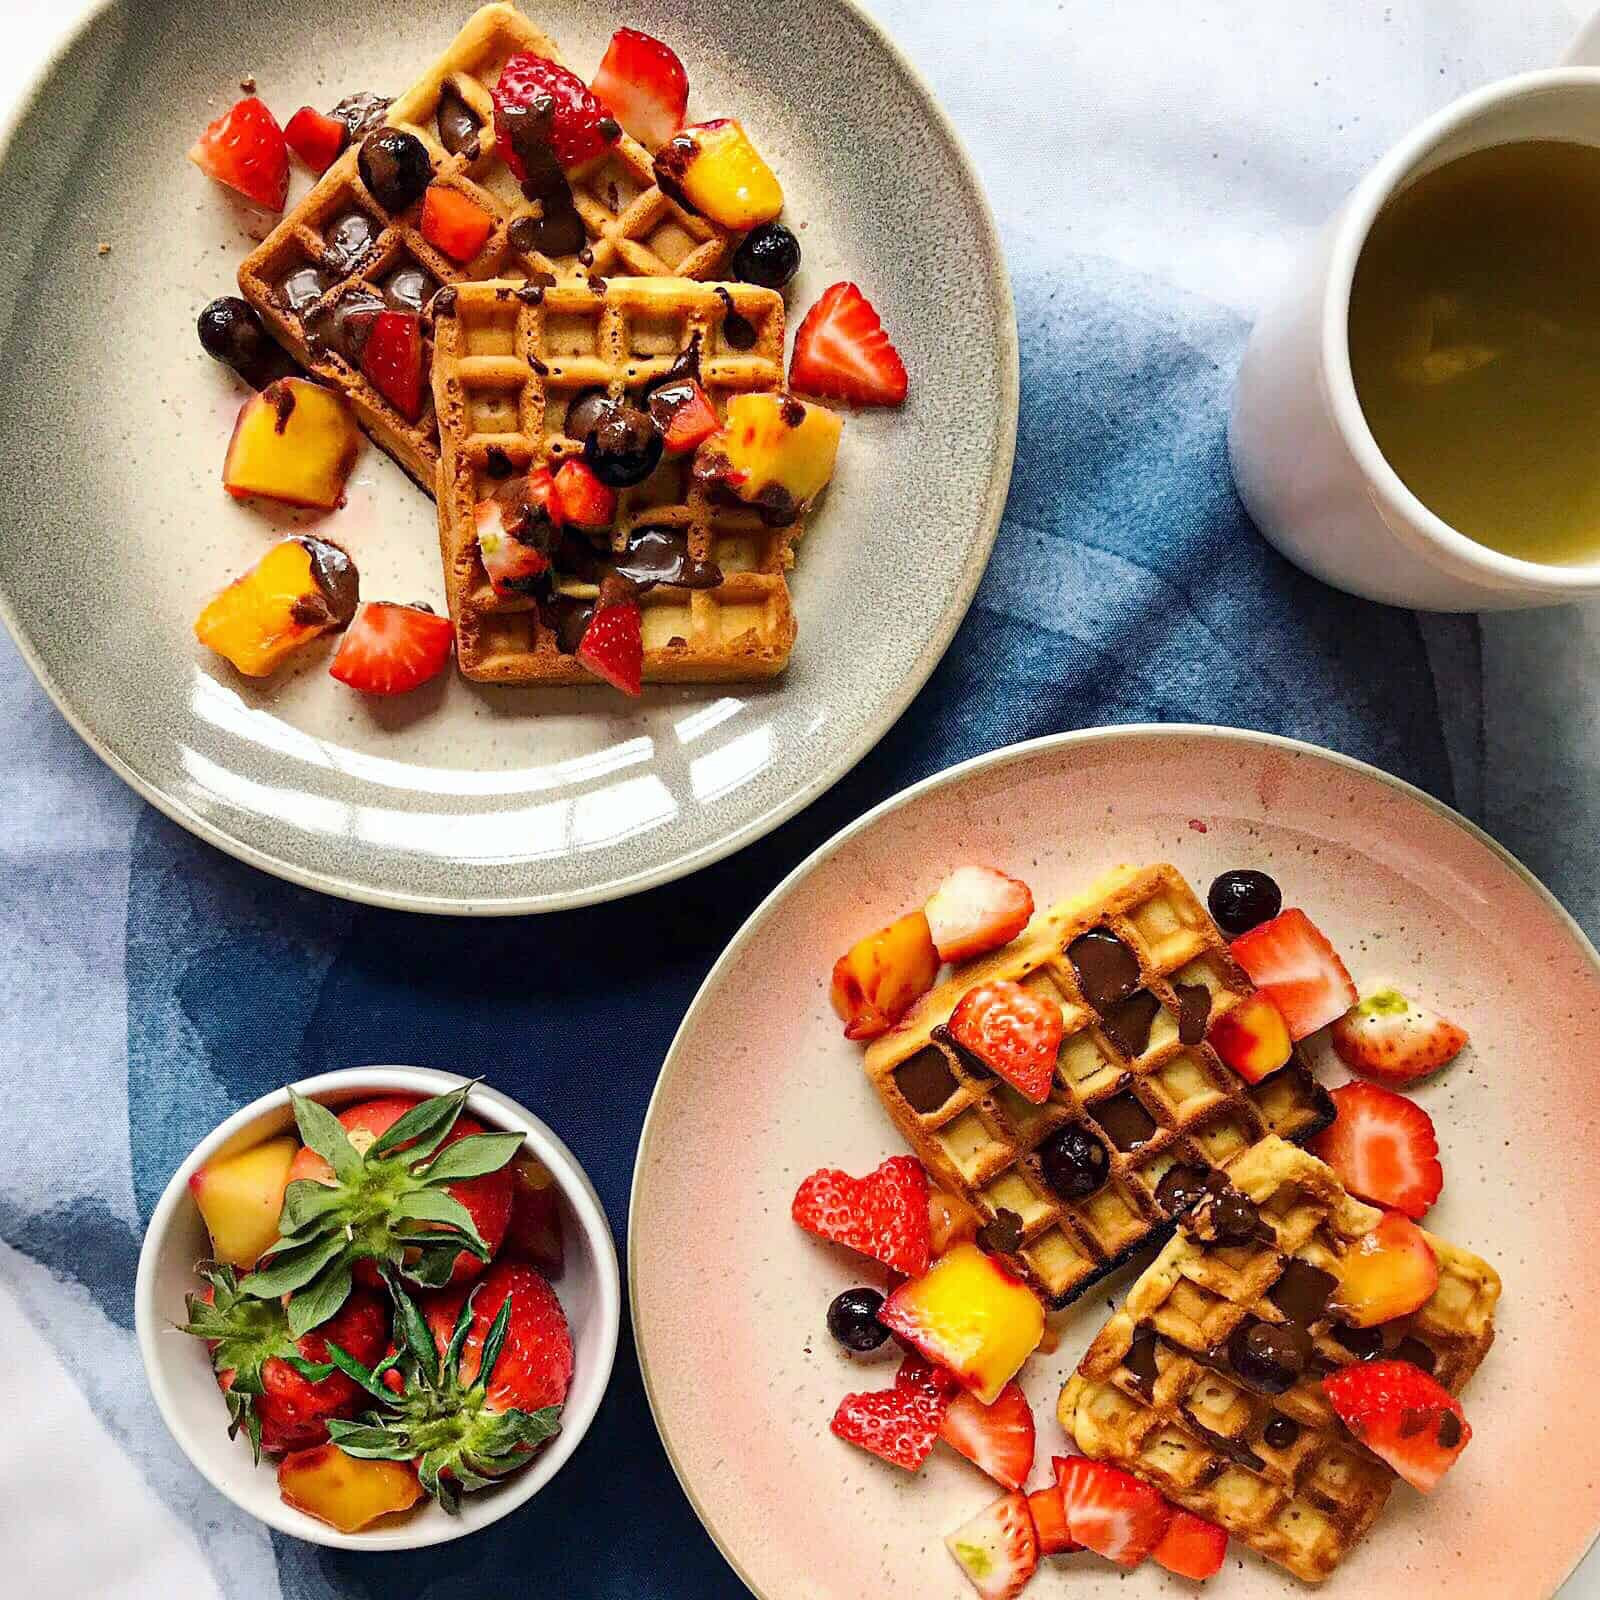 Healthy Vegan Gluten Free Recipes  Healthy Vegan Gluten Free Waffles